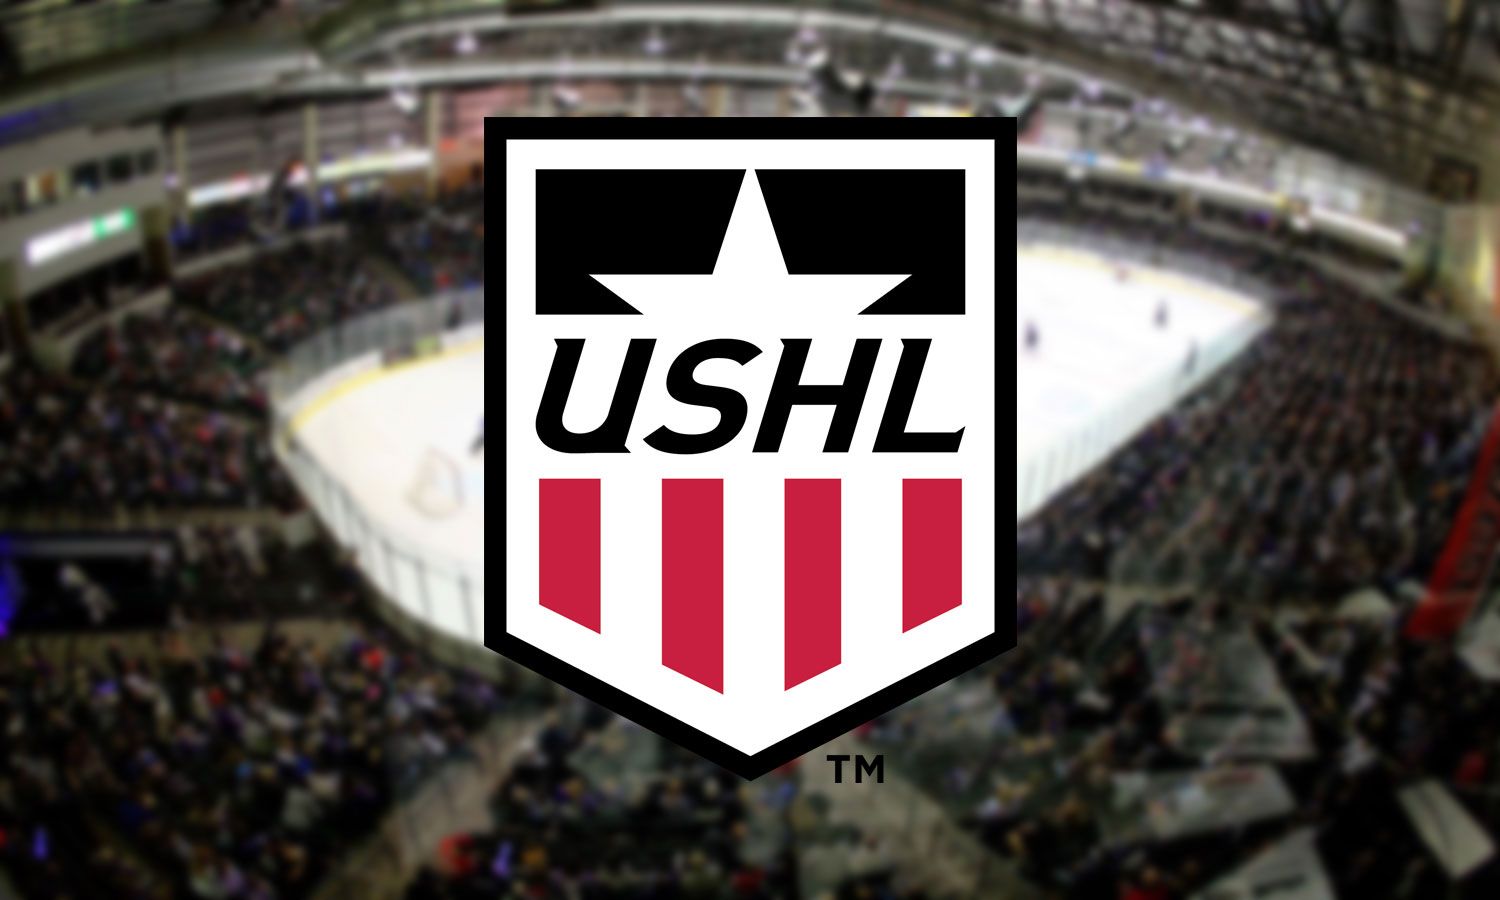 USHL Recap: Saturday, Oct. 20